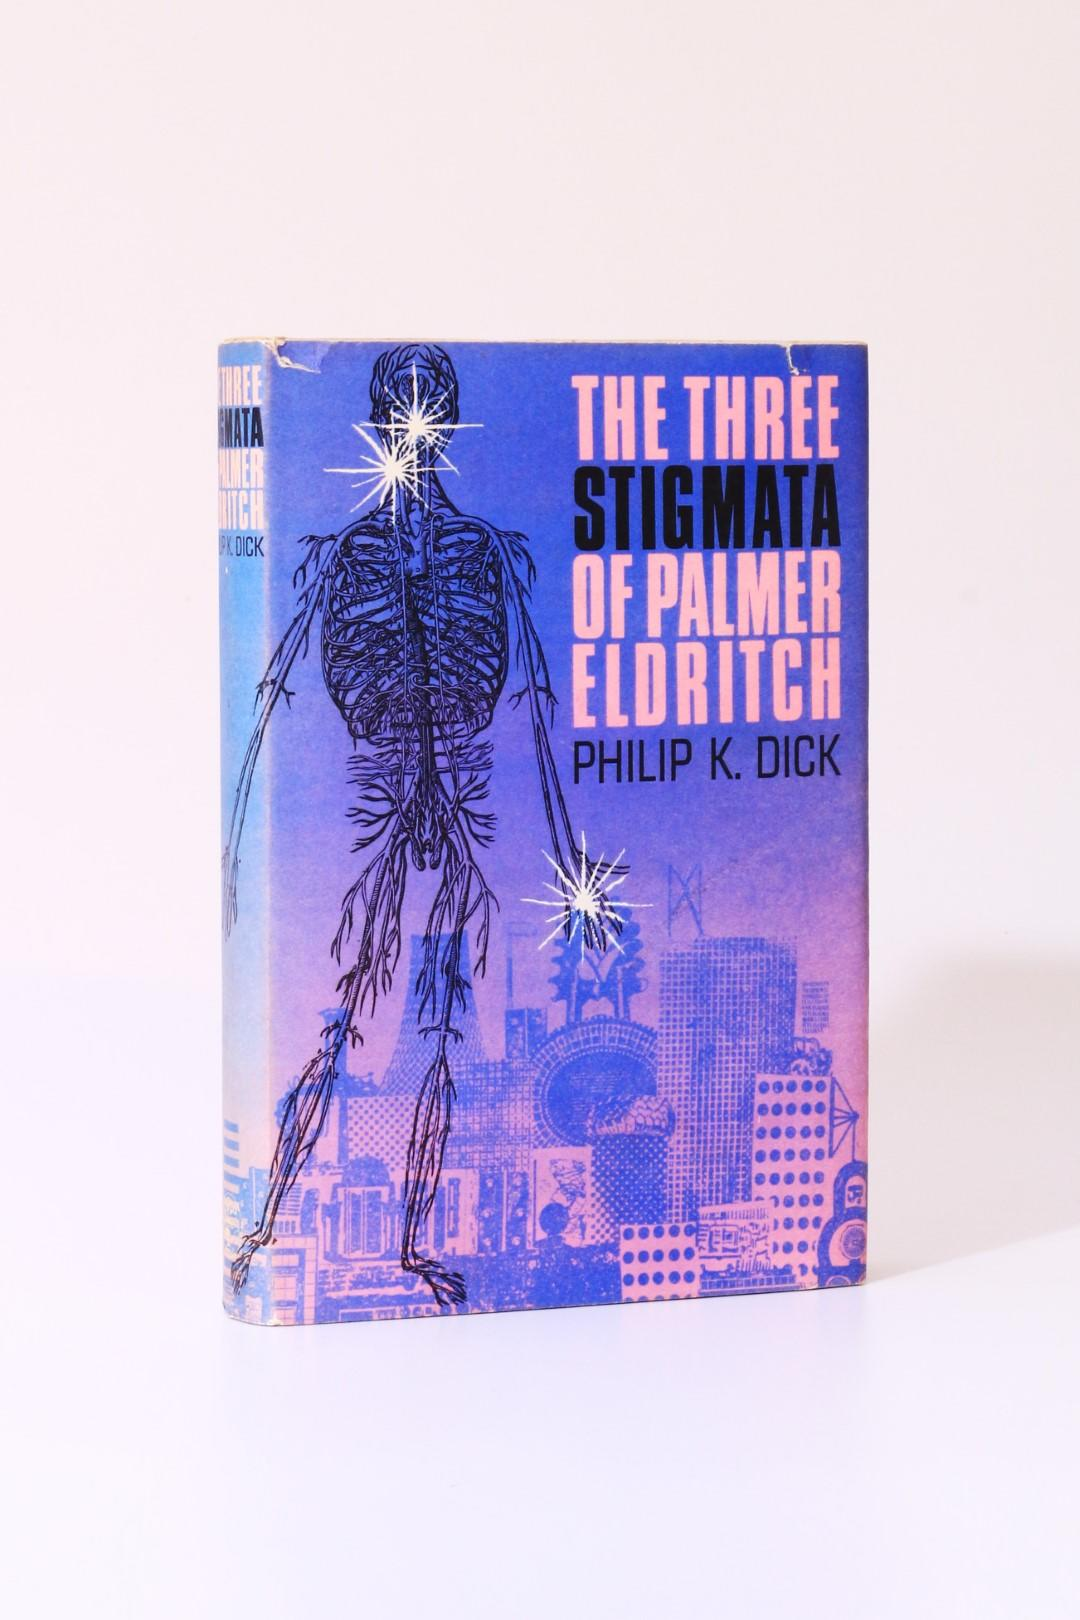 Philip K. Dick - The Three Stigmata of Palmer Eldritch - Jonathan Cape, 1966, First Edition.